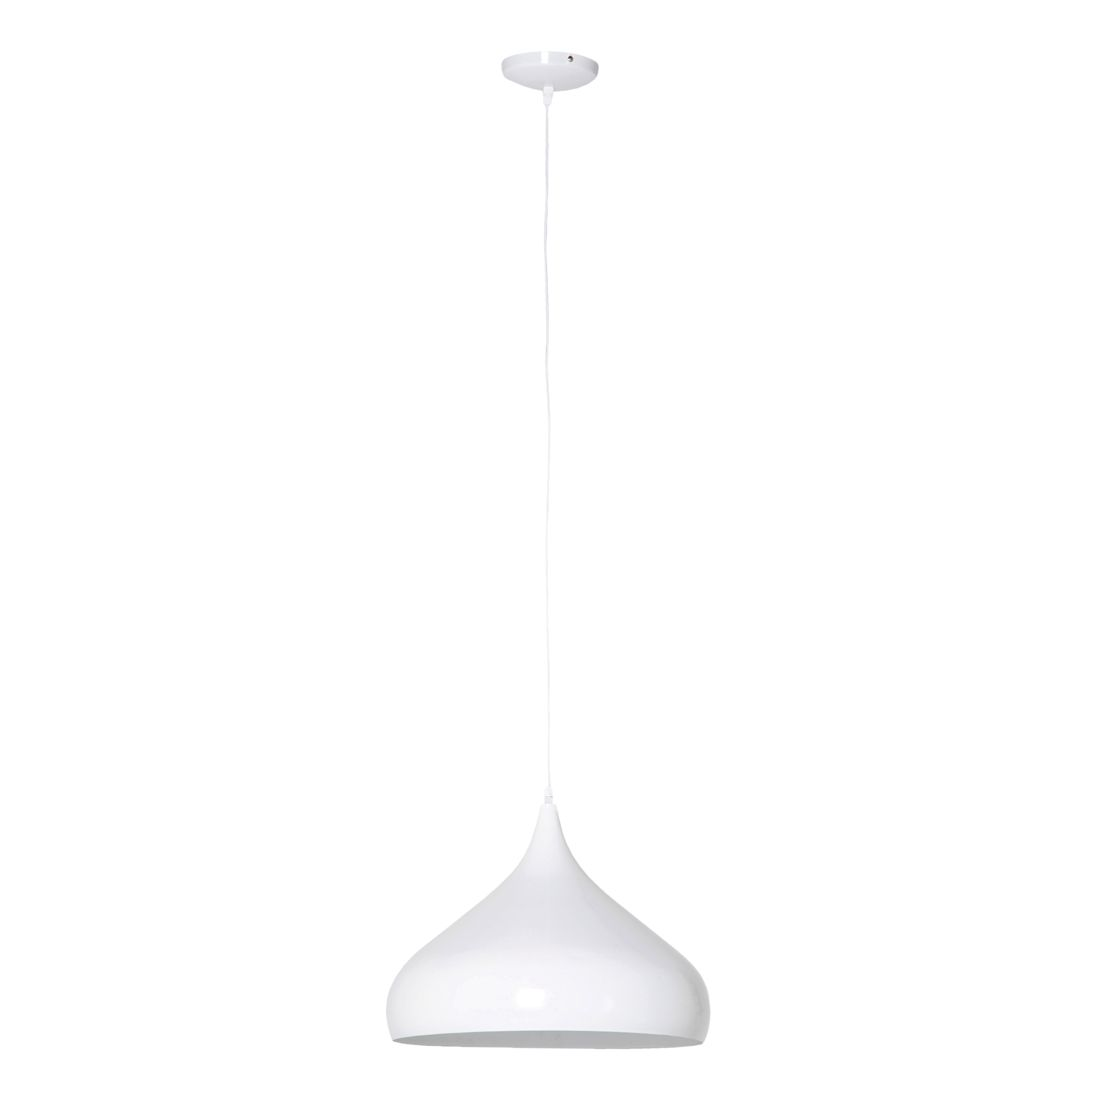 Suspension HL Cuisine White